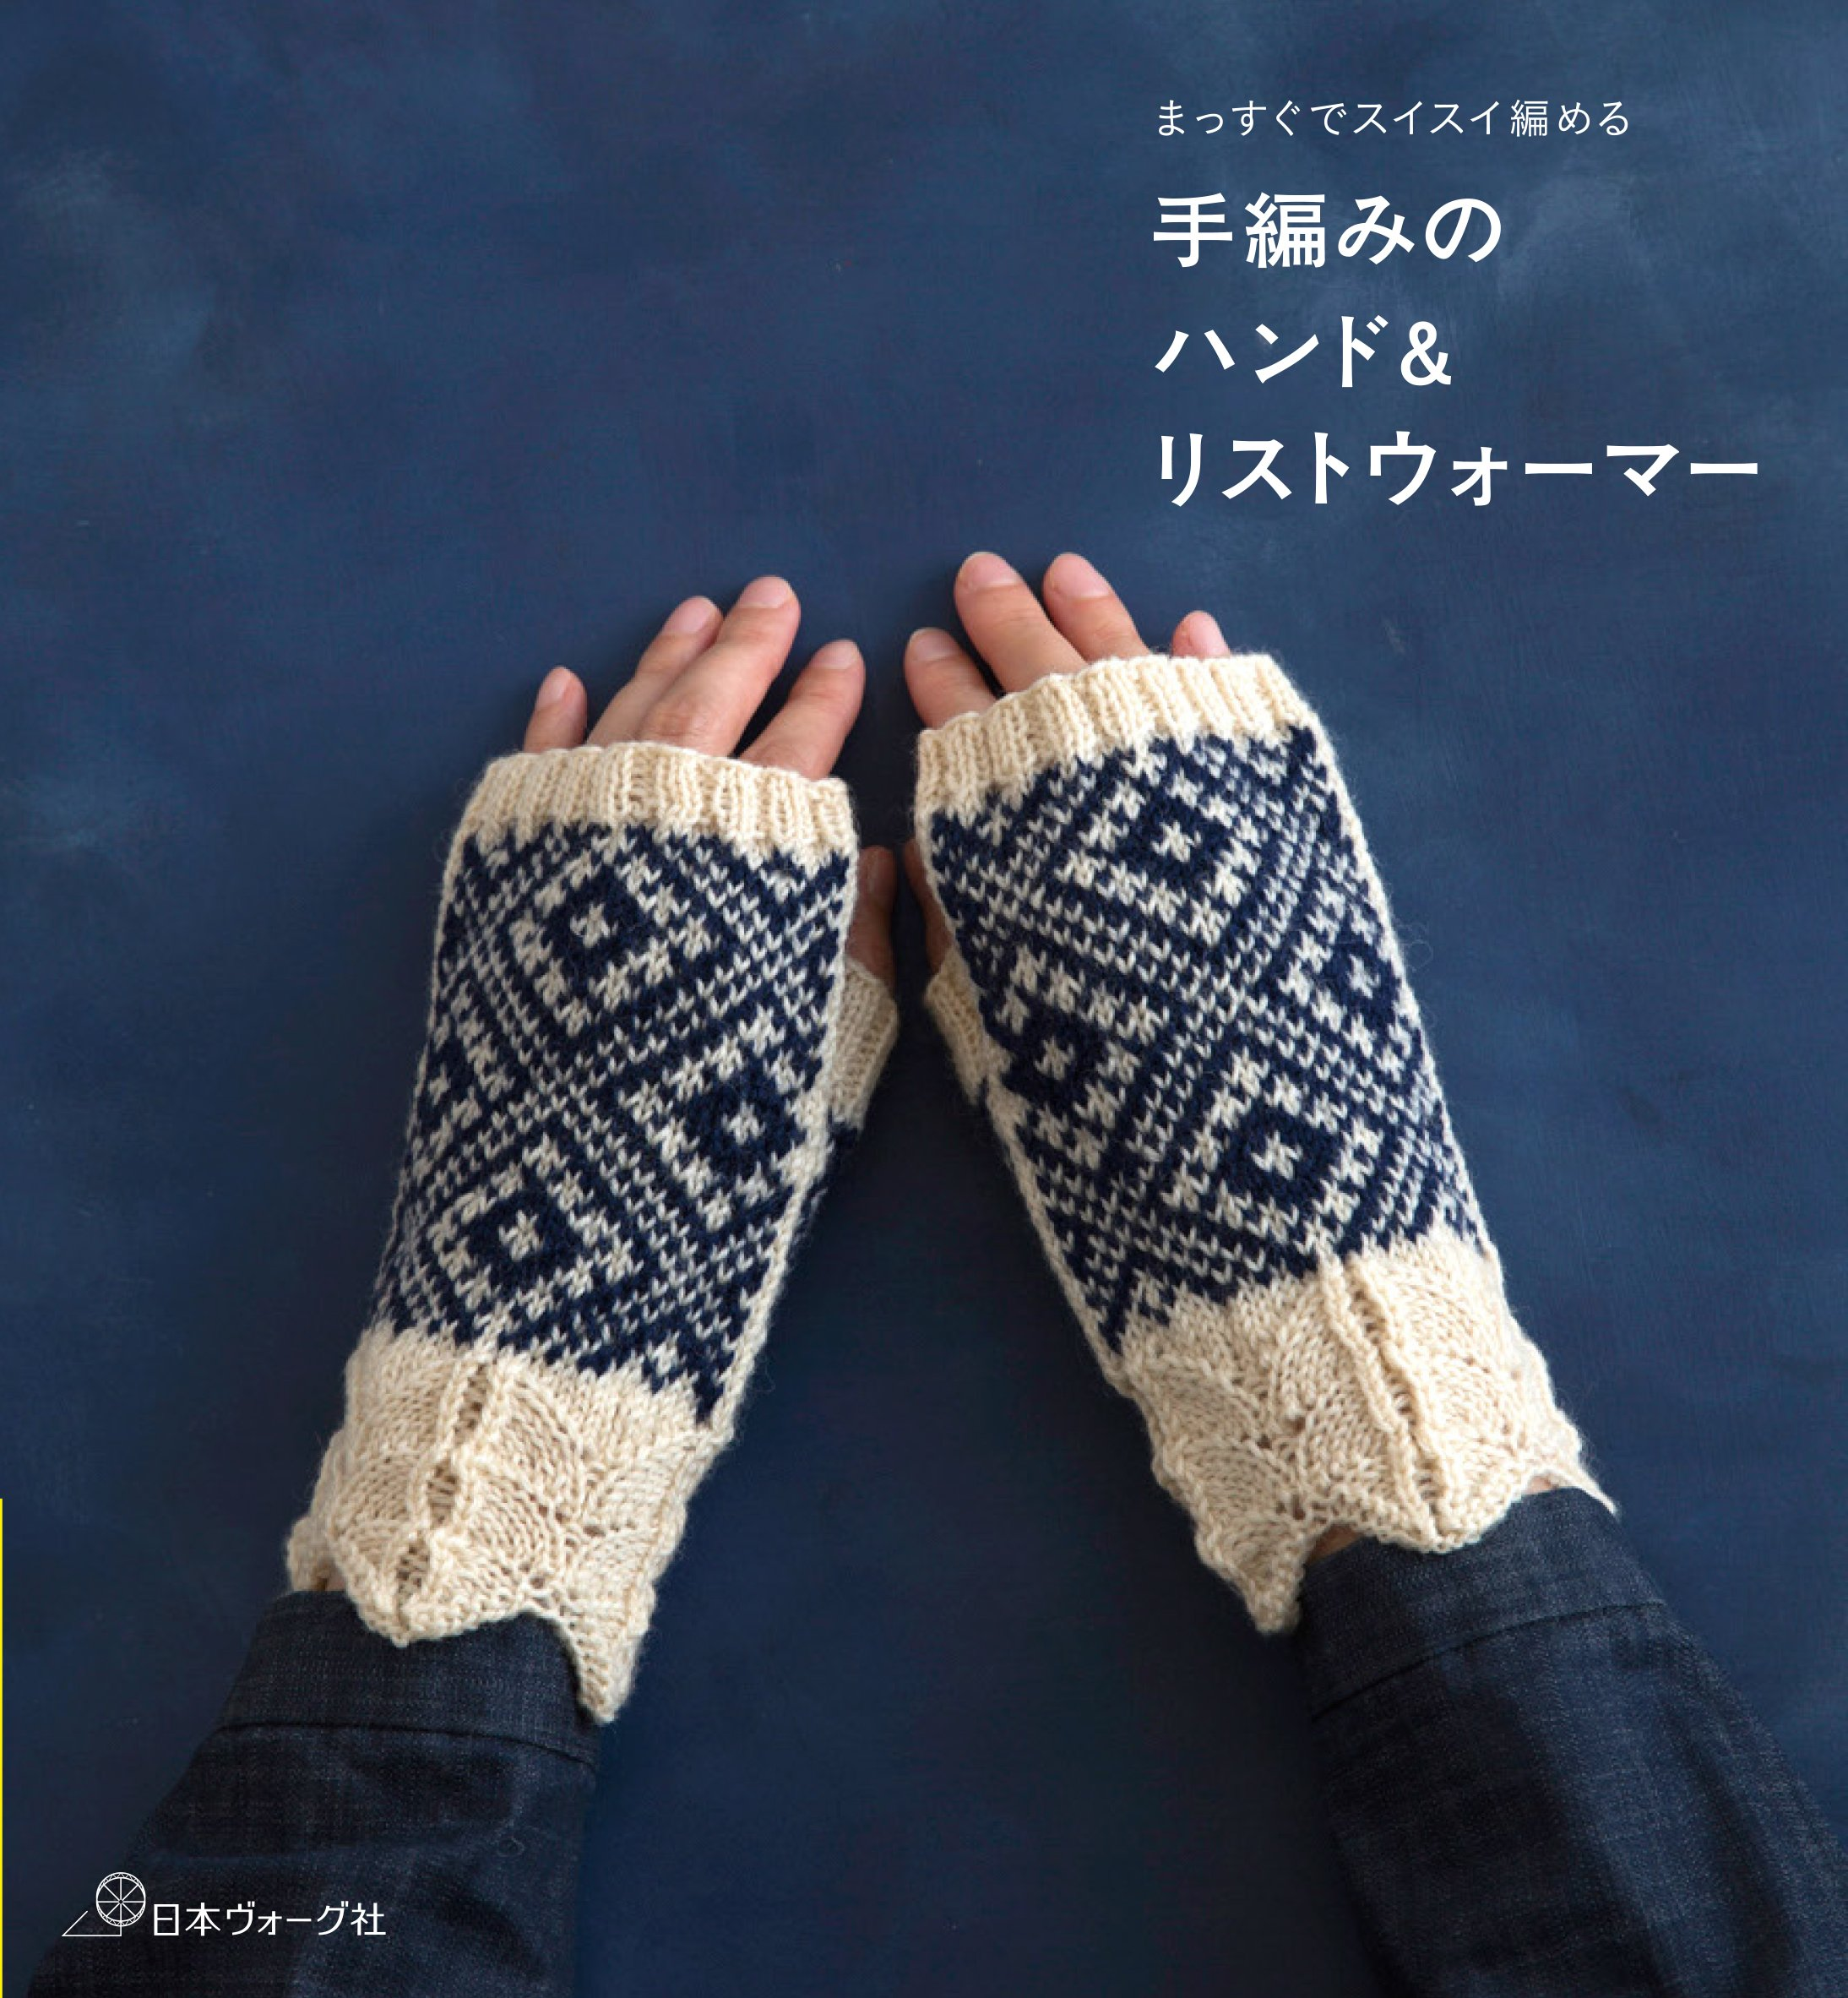 Hand-knitted hand & warmer